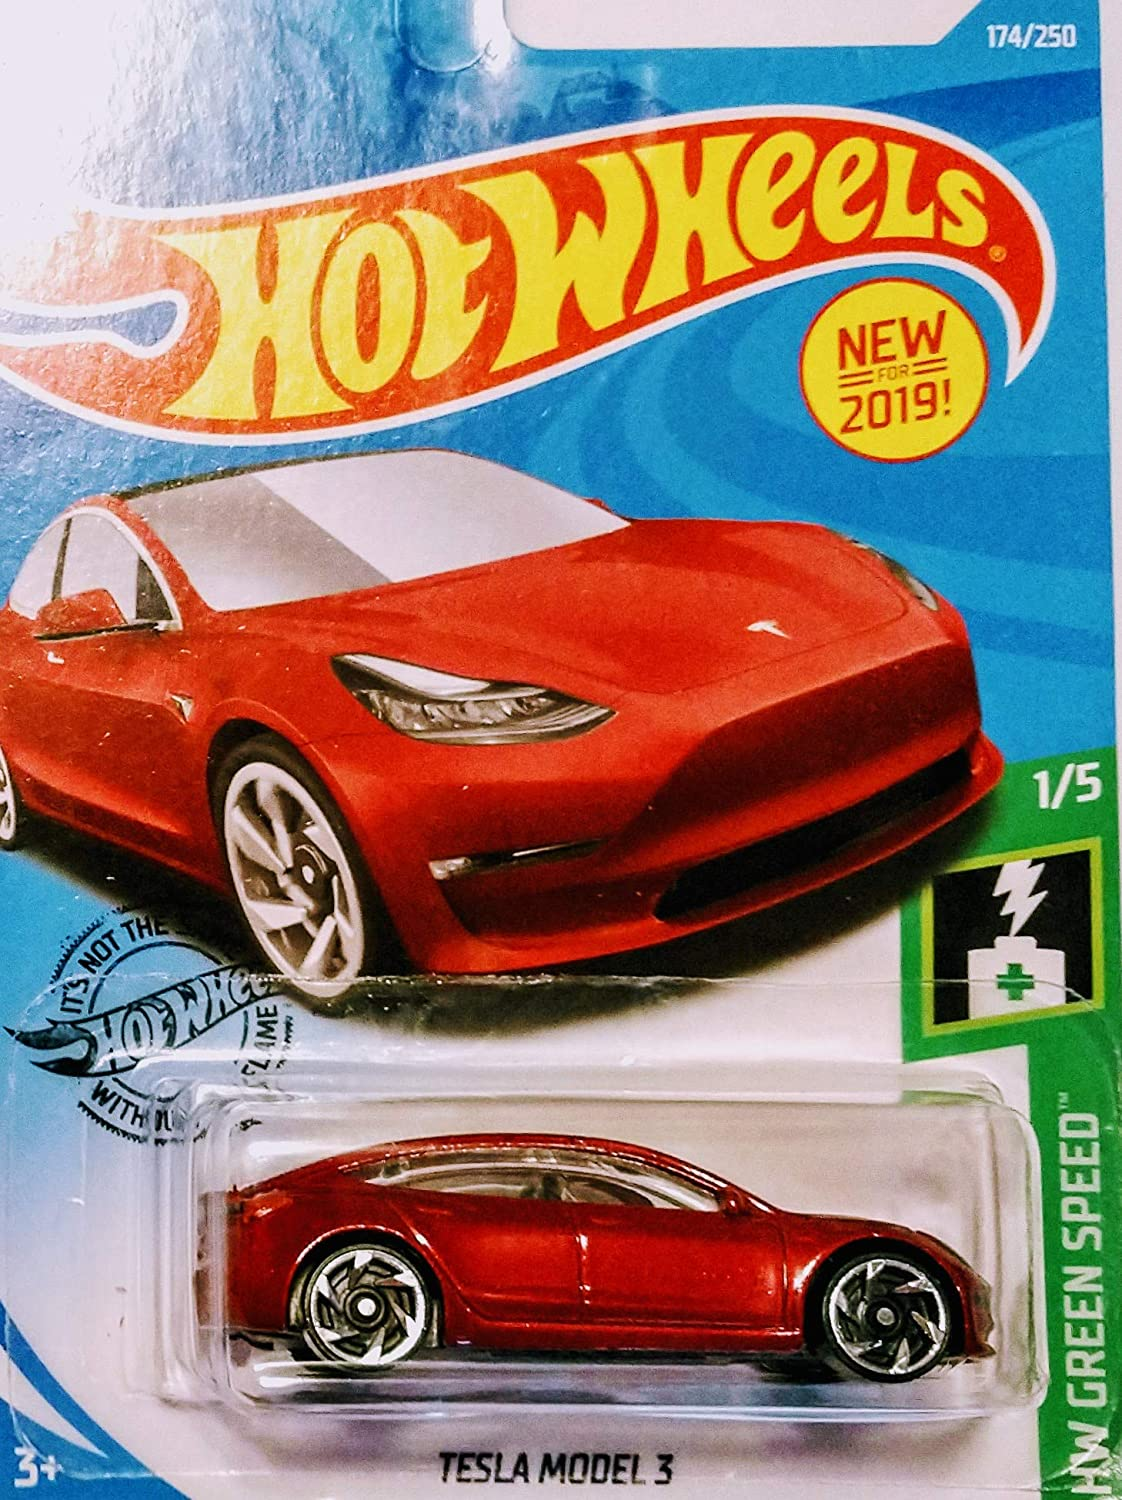 Hot Wheels Tesla Model 3 White and Red 172//250 2 Car Bundle Set